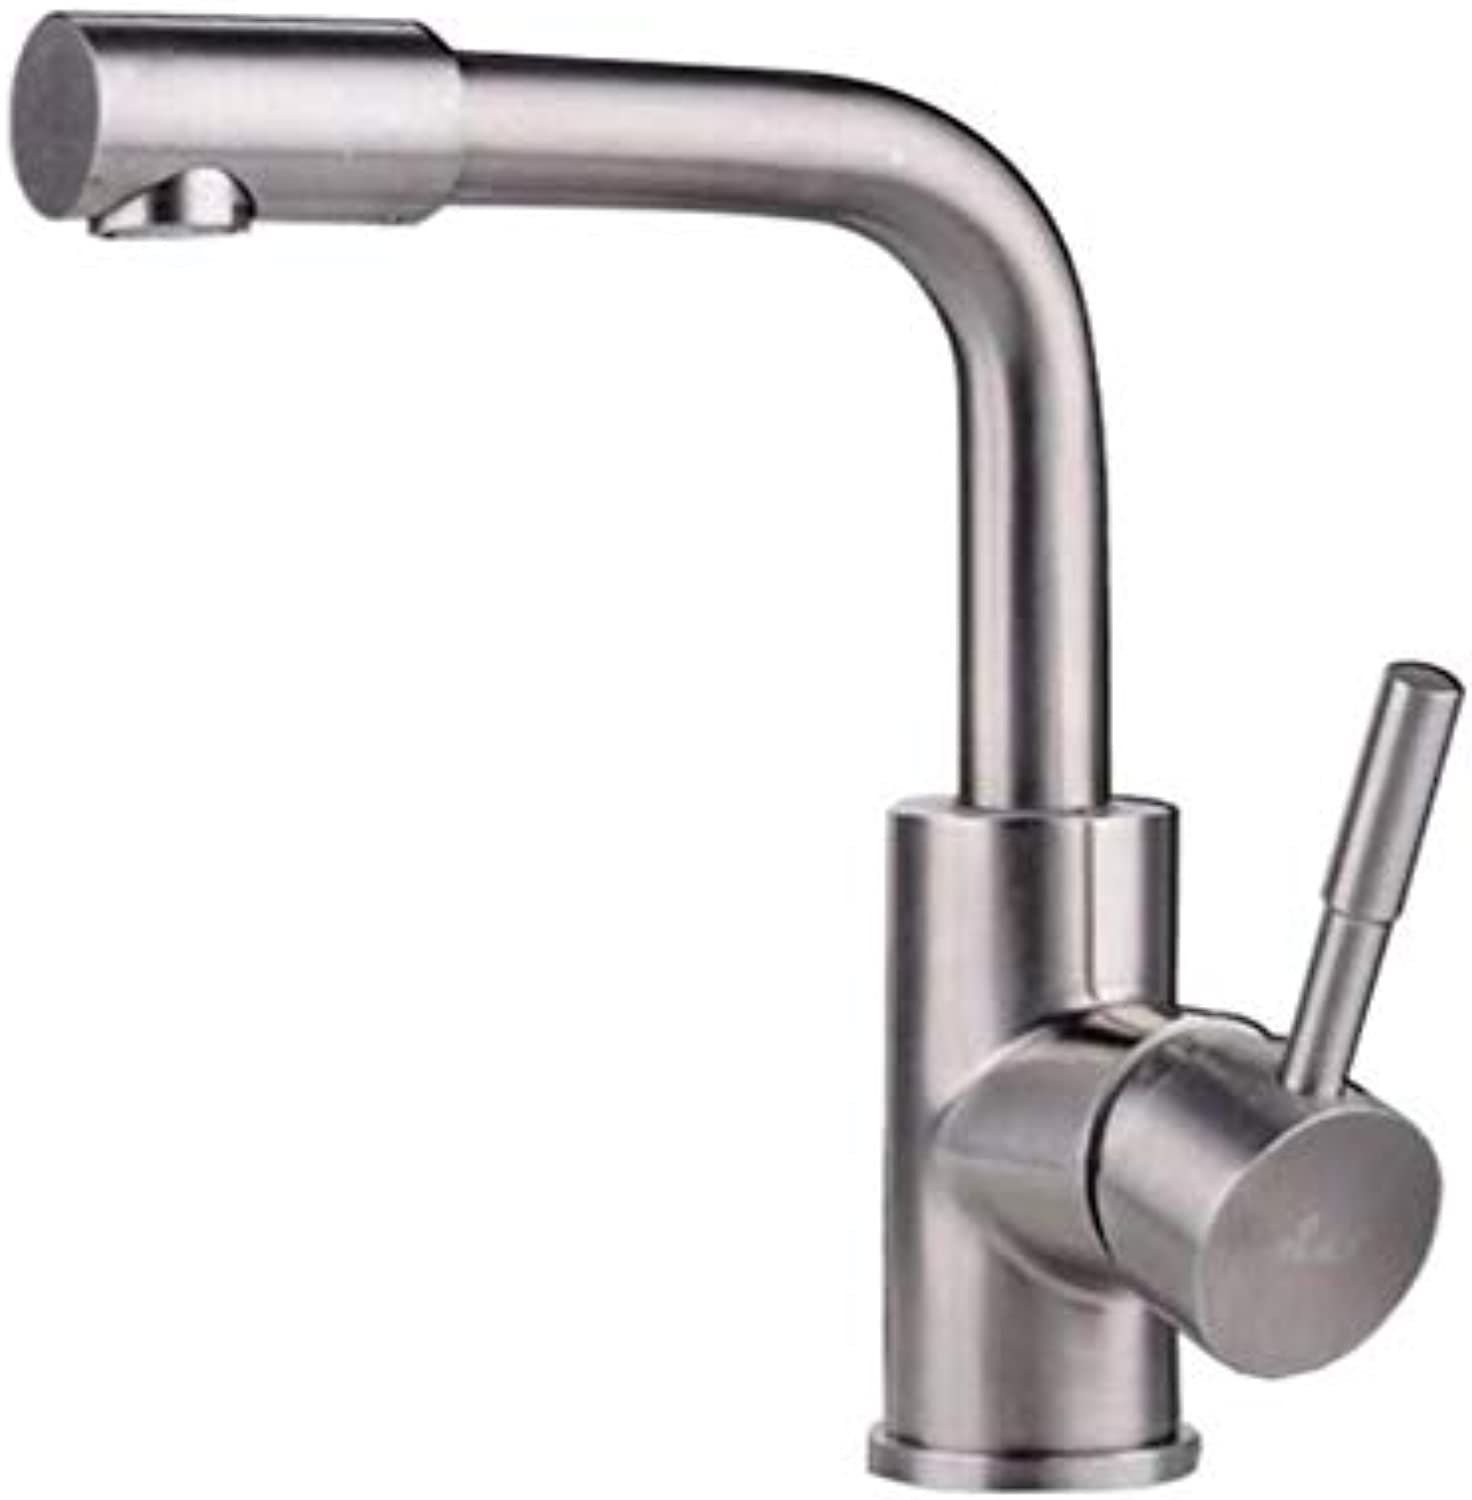 Taps Kitchen Sinktaps Mixer Swivel Faucet Sink 304 Drawn Stainless Steel Single Hole Cold